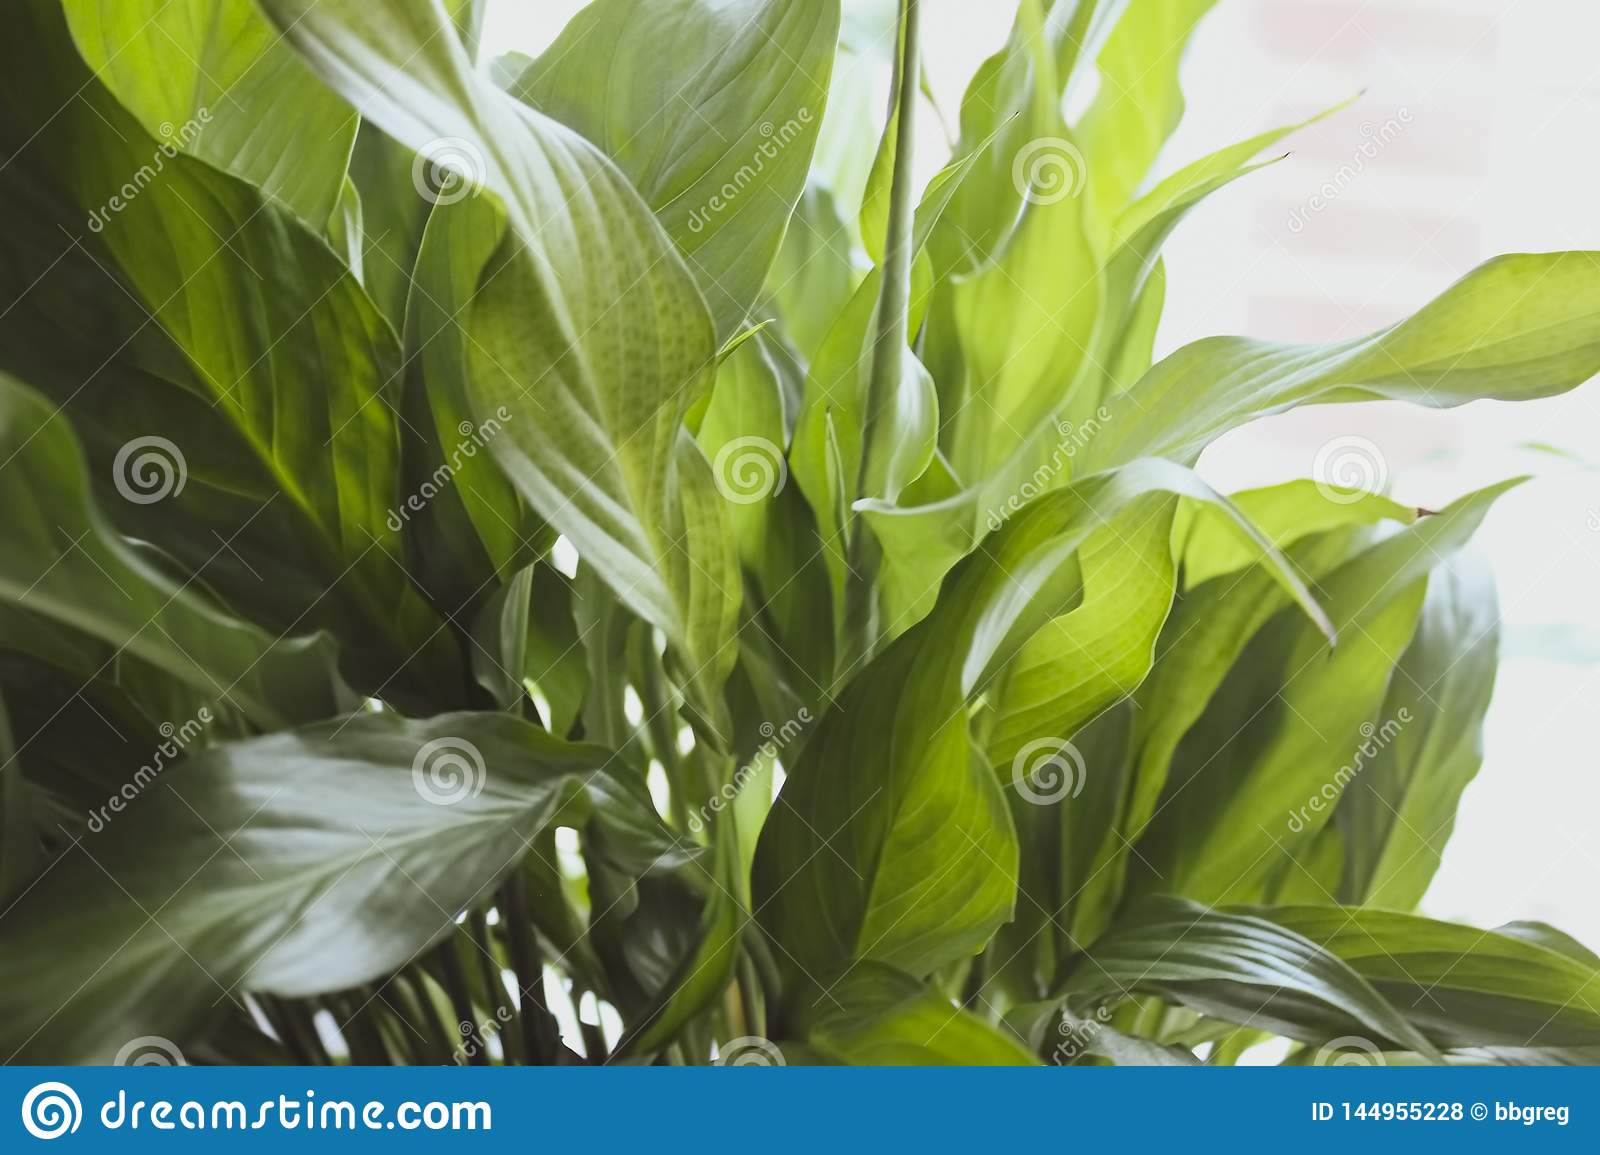 Large Leaves Of Spathiphyllum Illuminated By Bright Sunlight Indoor Plant Closeup In Soft Blurred Style For Background Stock Photo Image Of Background Colorful 144955228